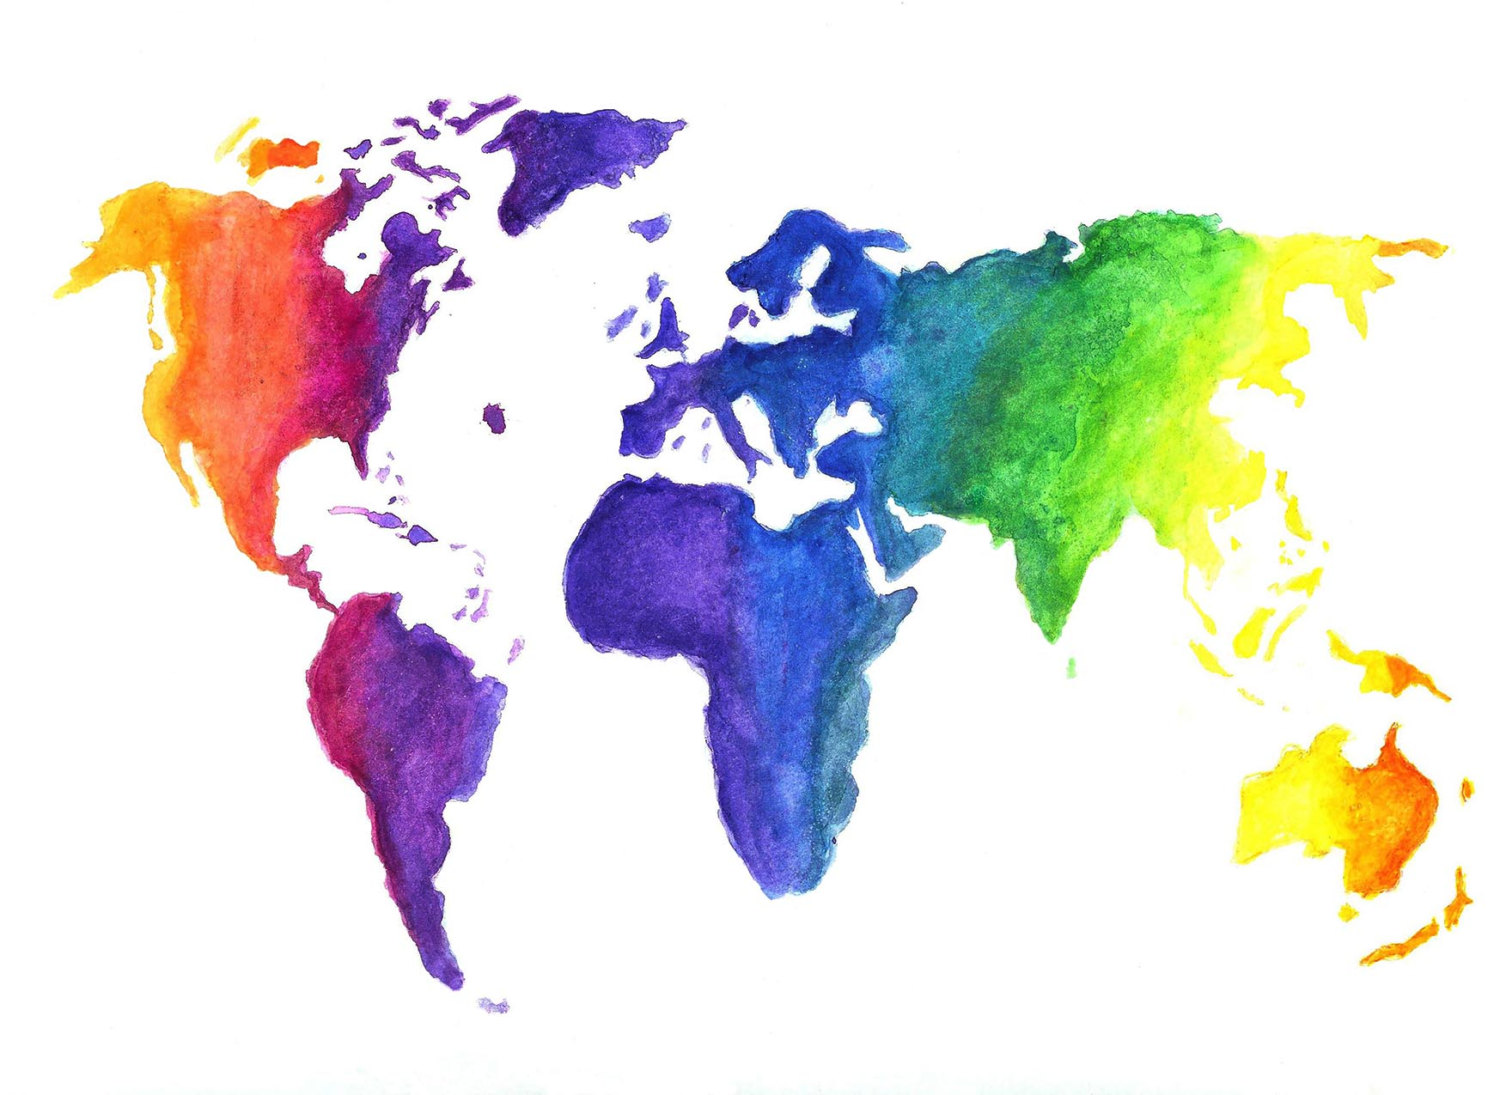 Earth map drawing at getdrawings free for personal use earth 1500x1095 watercolor world map print earth in rainbow colors hand gumiabroncs Choice Image